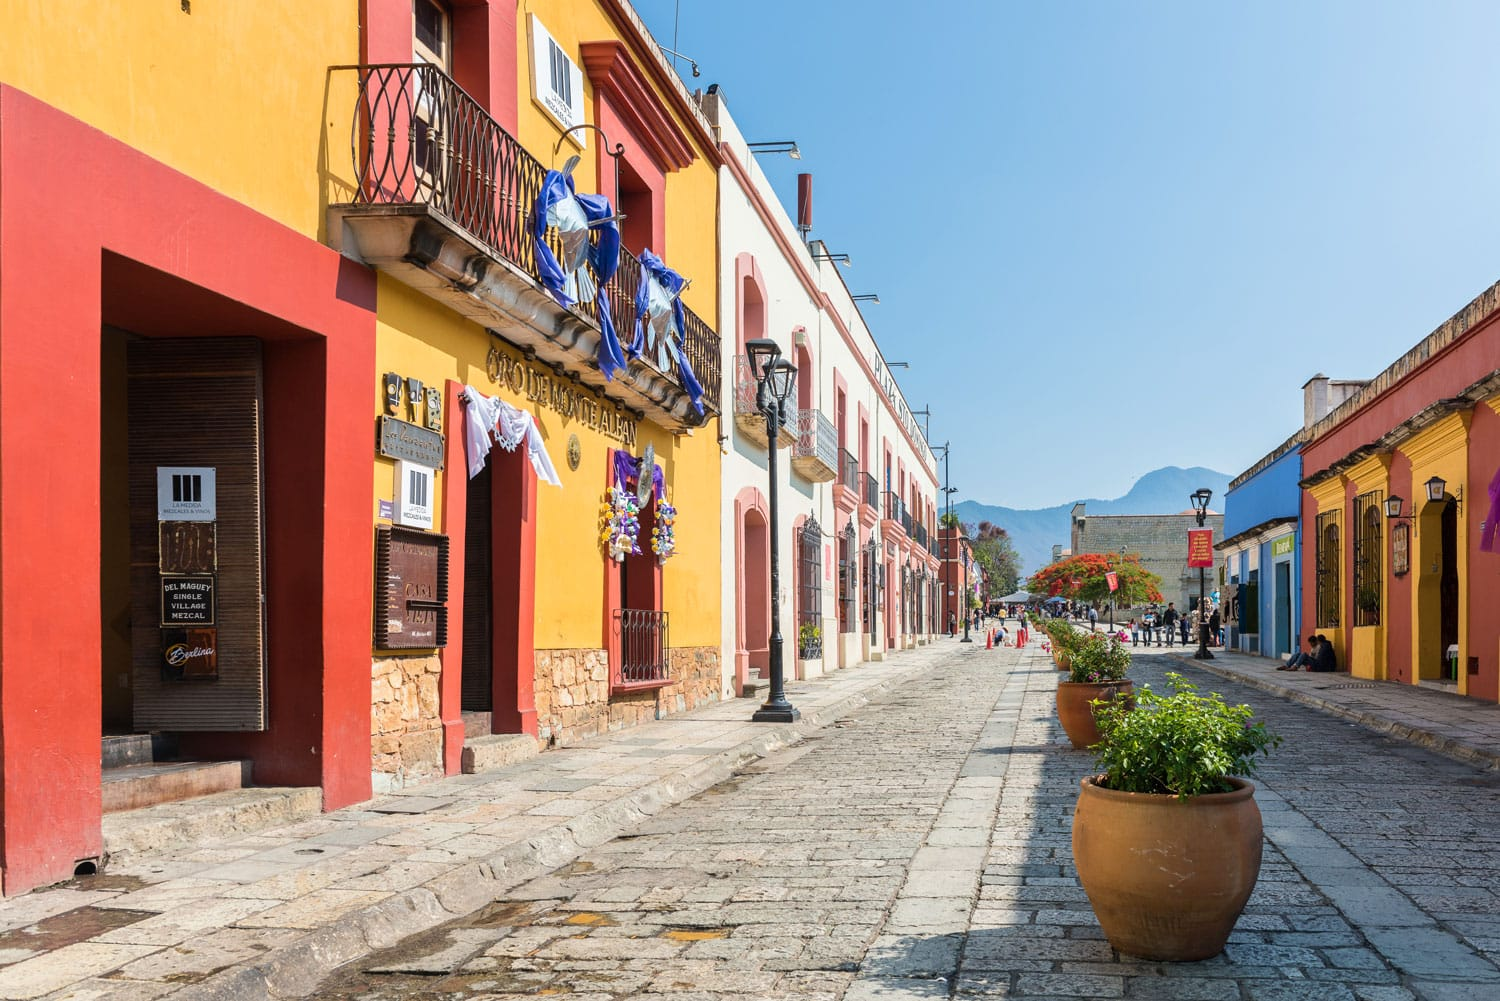 Colorful buildings on the cobblestone streets of Oaxaca, Mexico